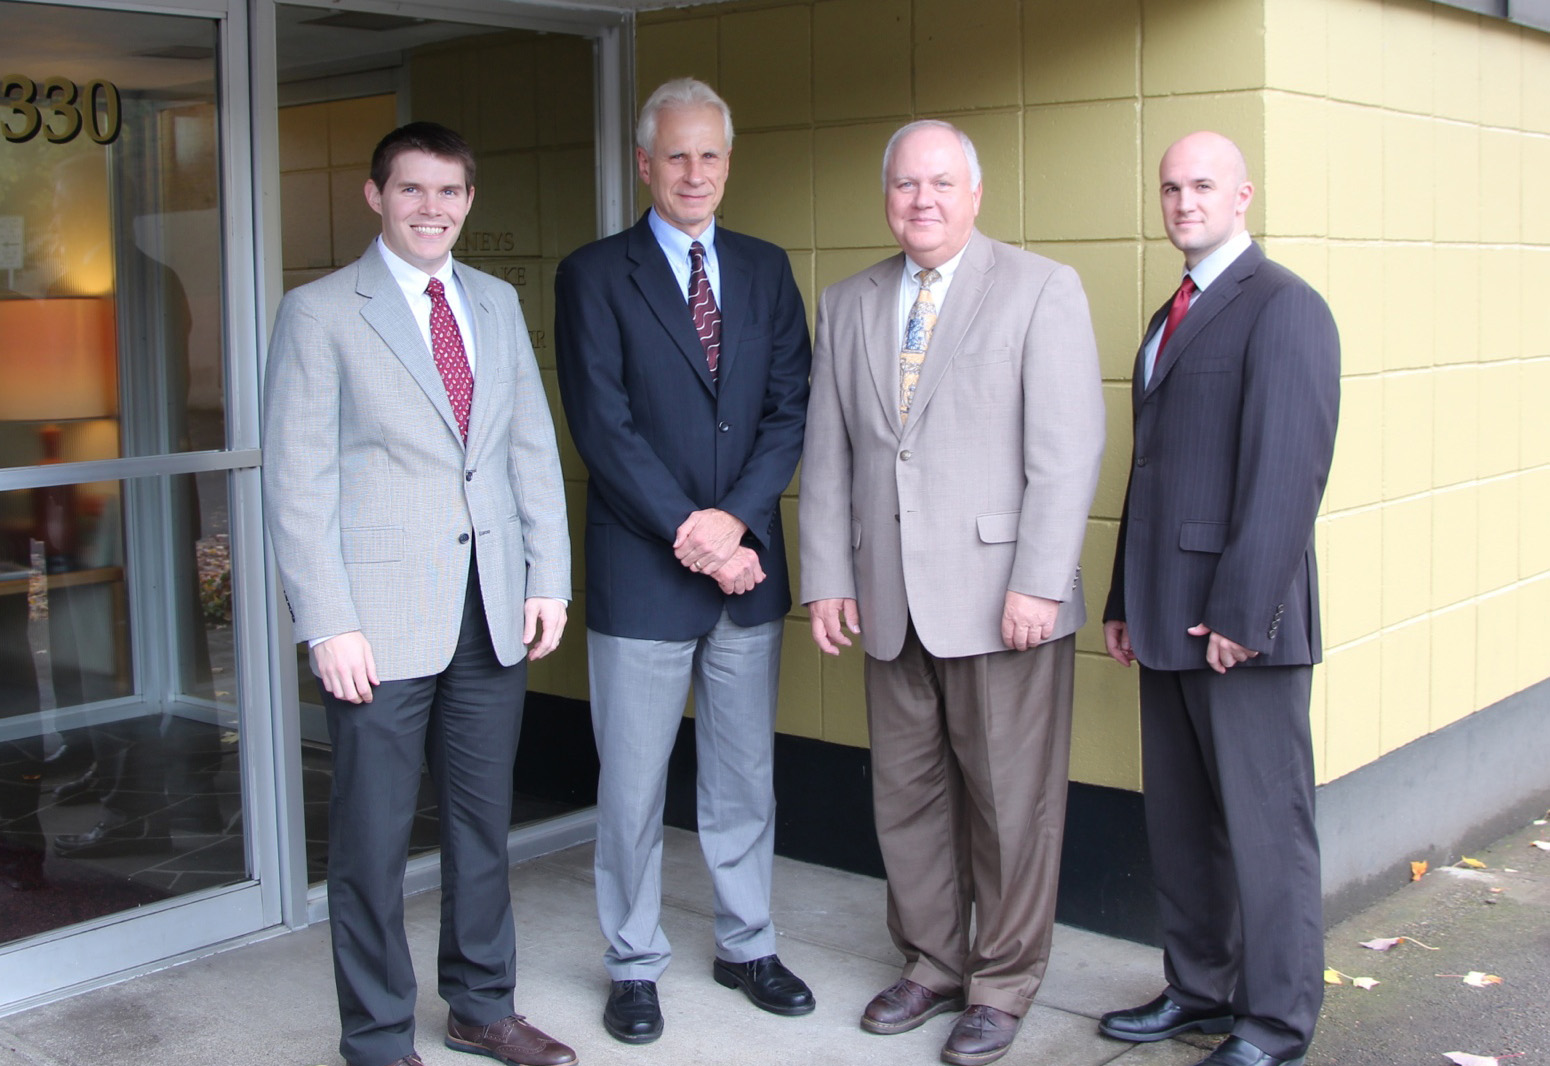 Attorneys | McMinnville, OR  | Lake, Hart & Cooper| Brian Branch, Jerry Hart, Brent Lake and Joshua Cooper.